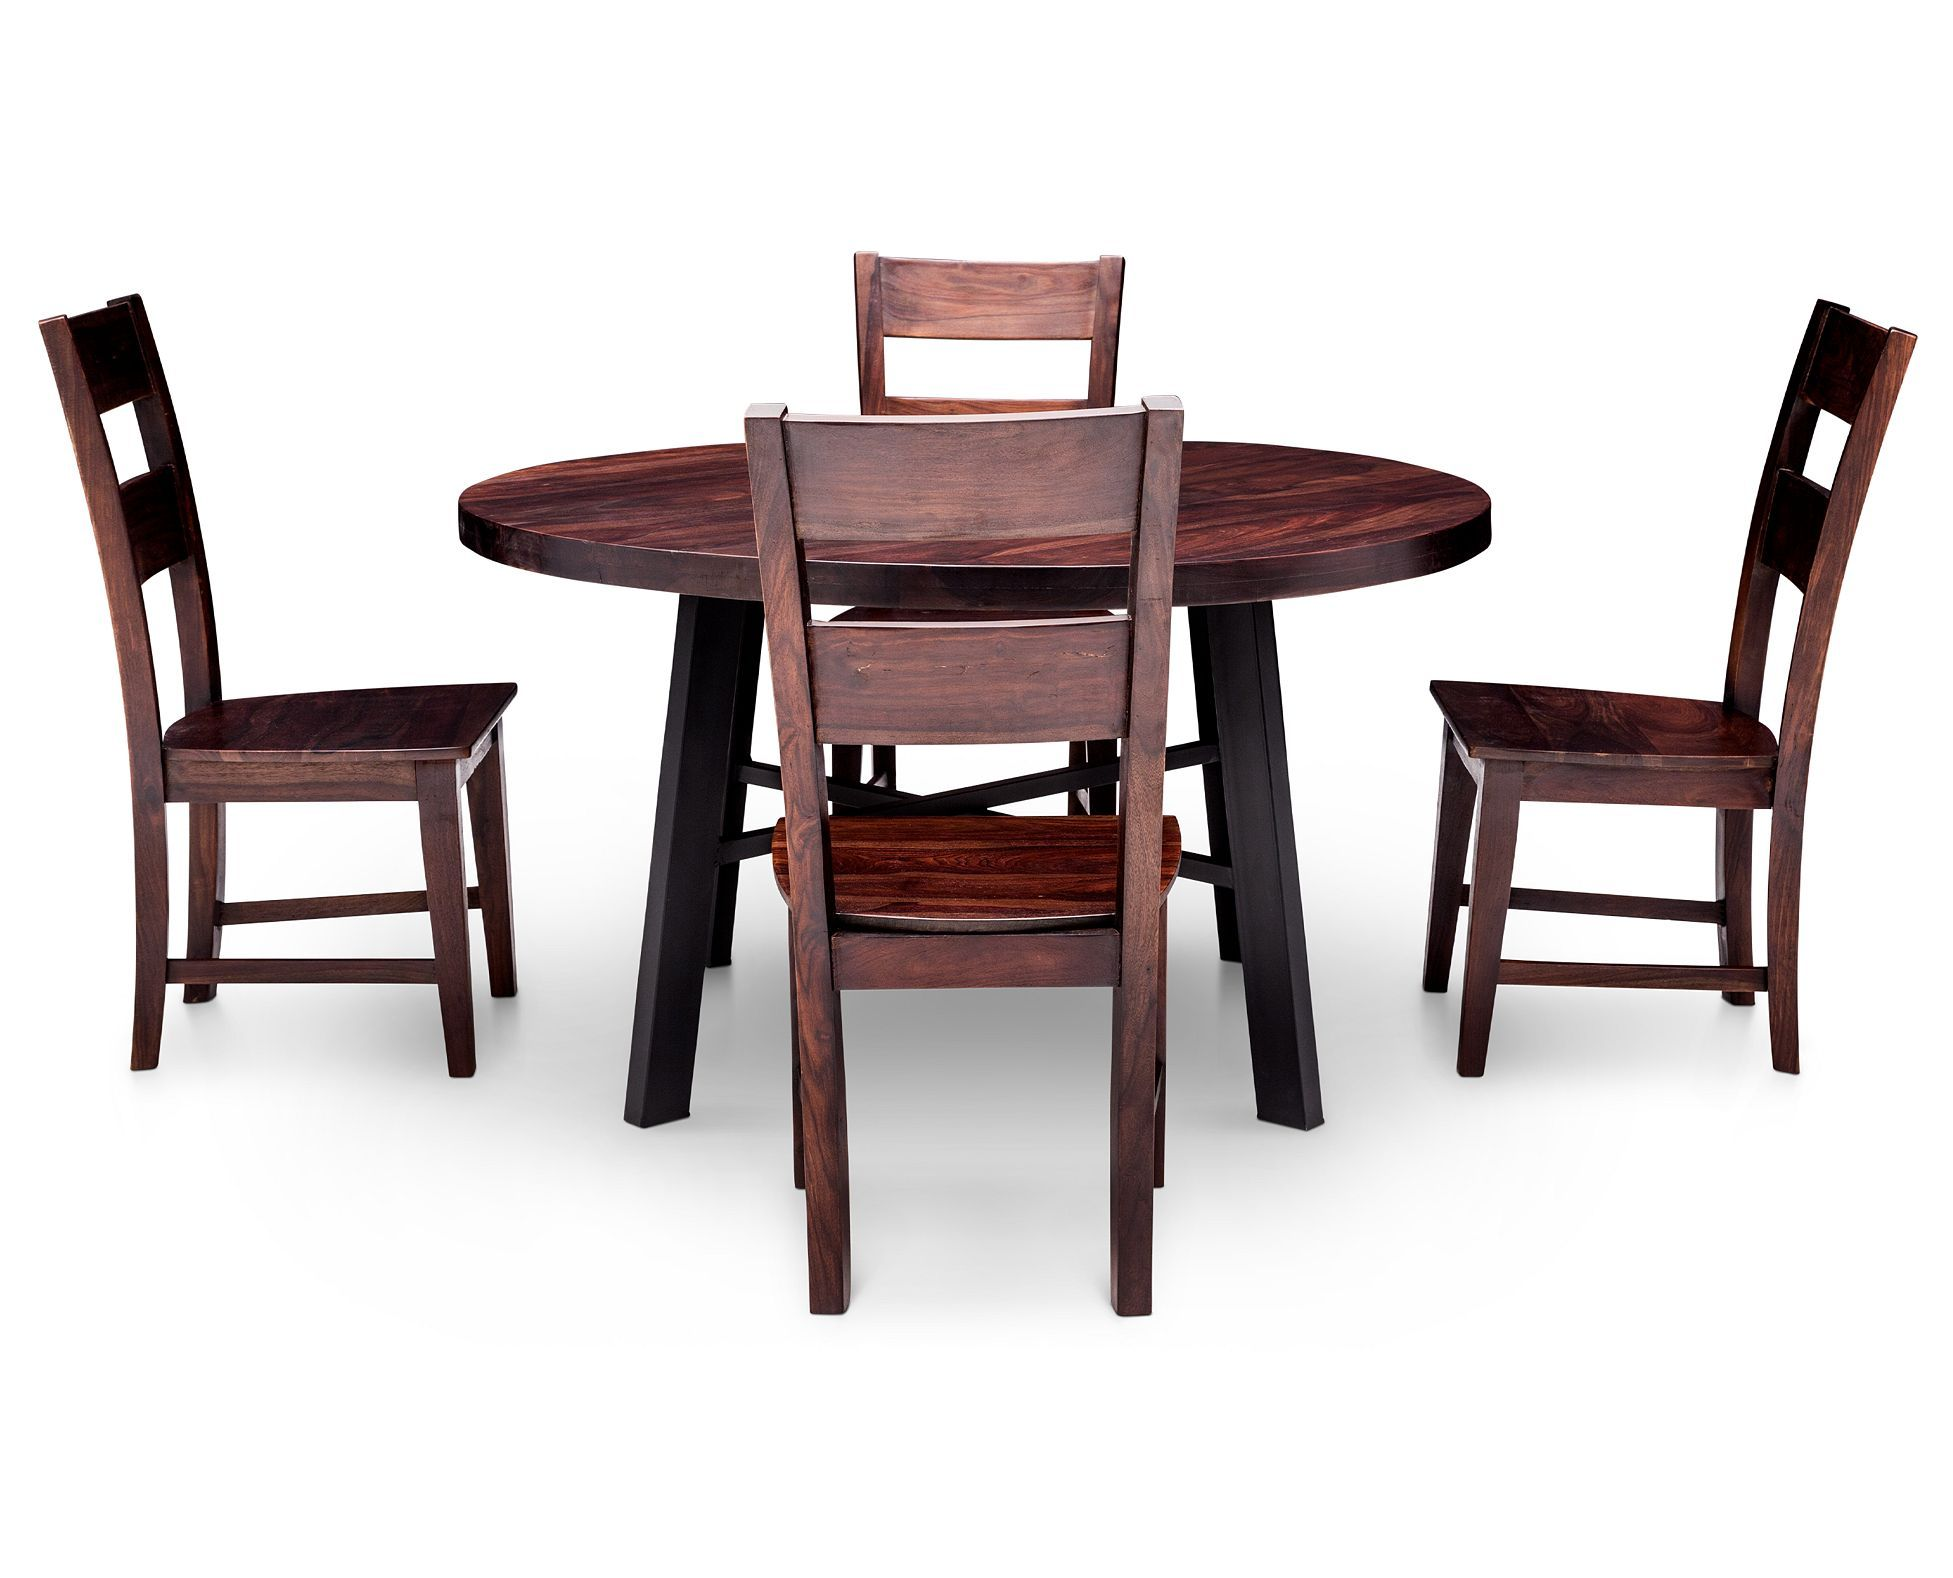 Inspired By India The Nepali 5 Piece Round Dining Room Set Is Made To Last Available In Natural O Wood Dining Room Table Dining Table Round Dining Room Table